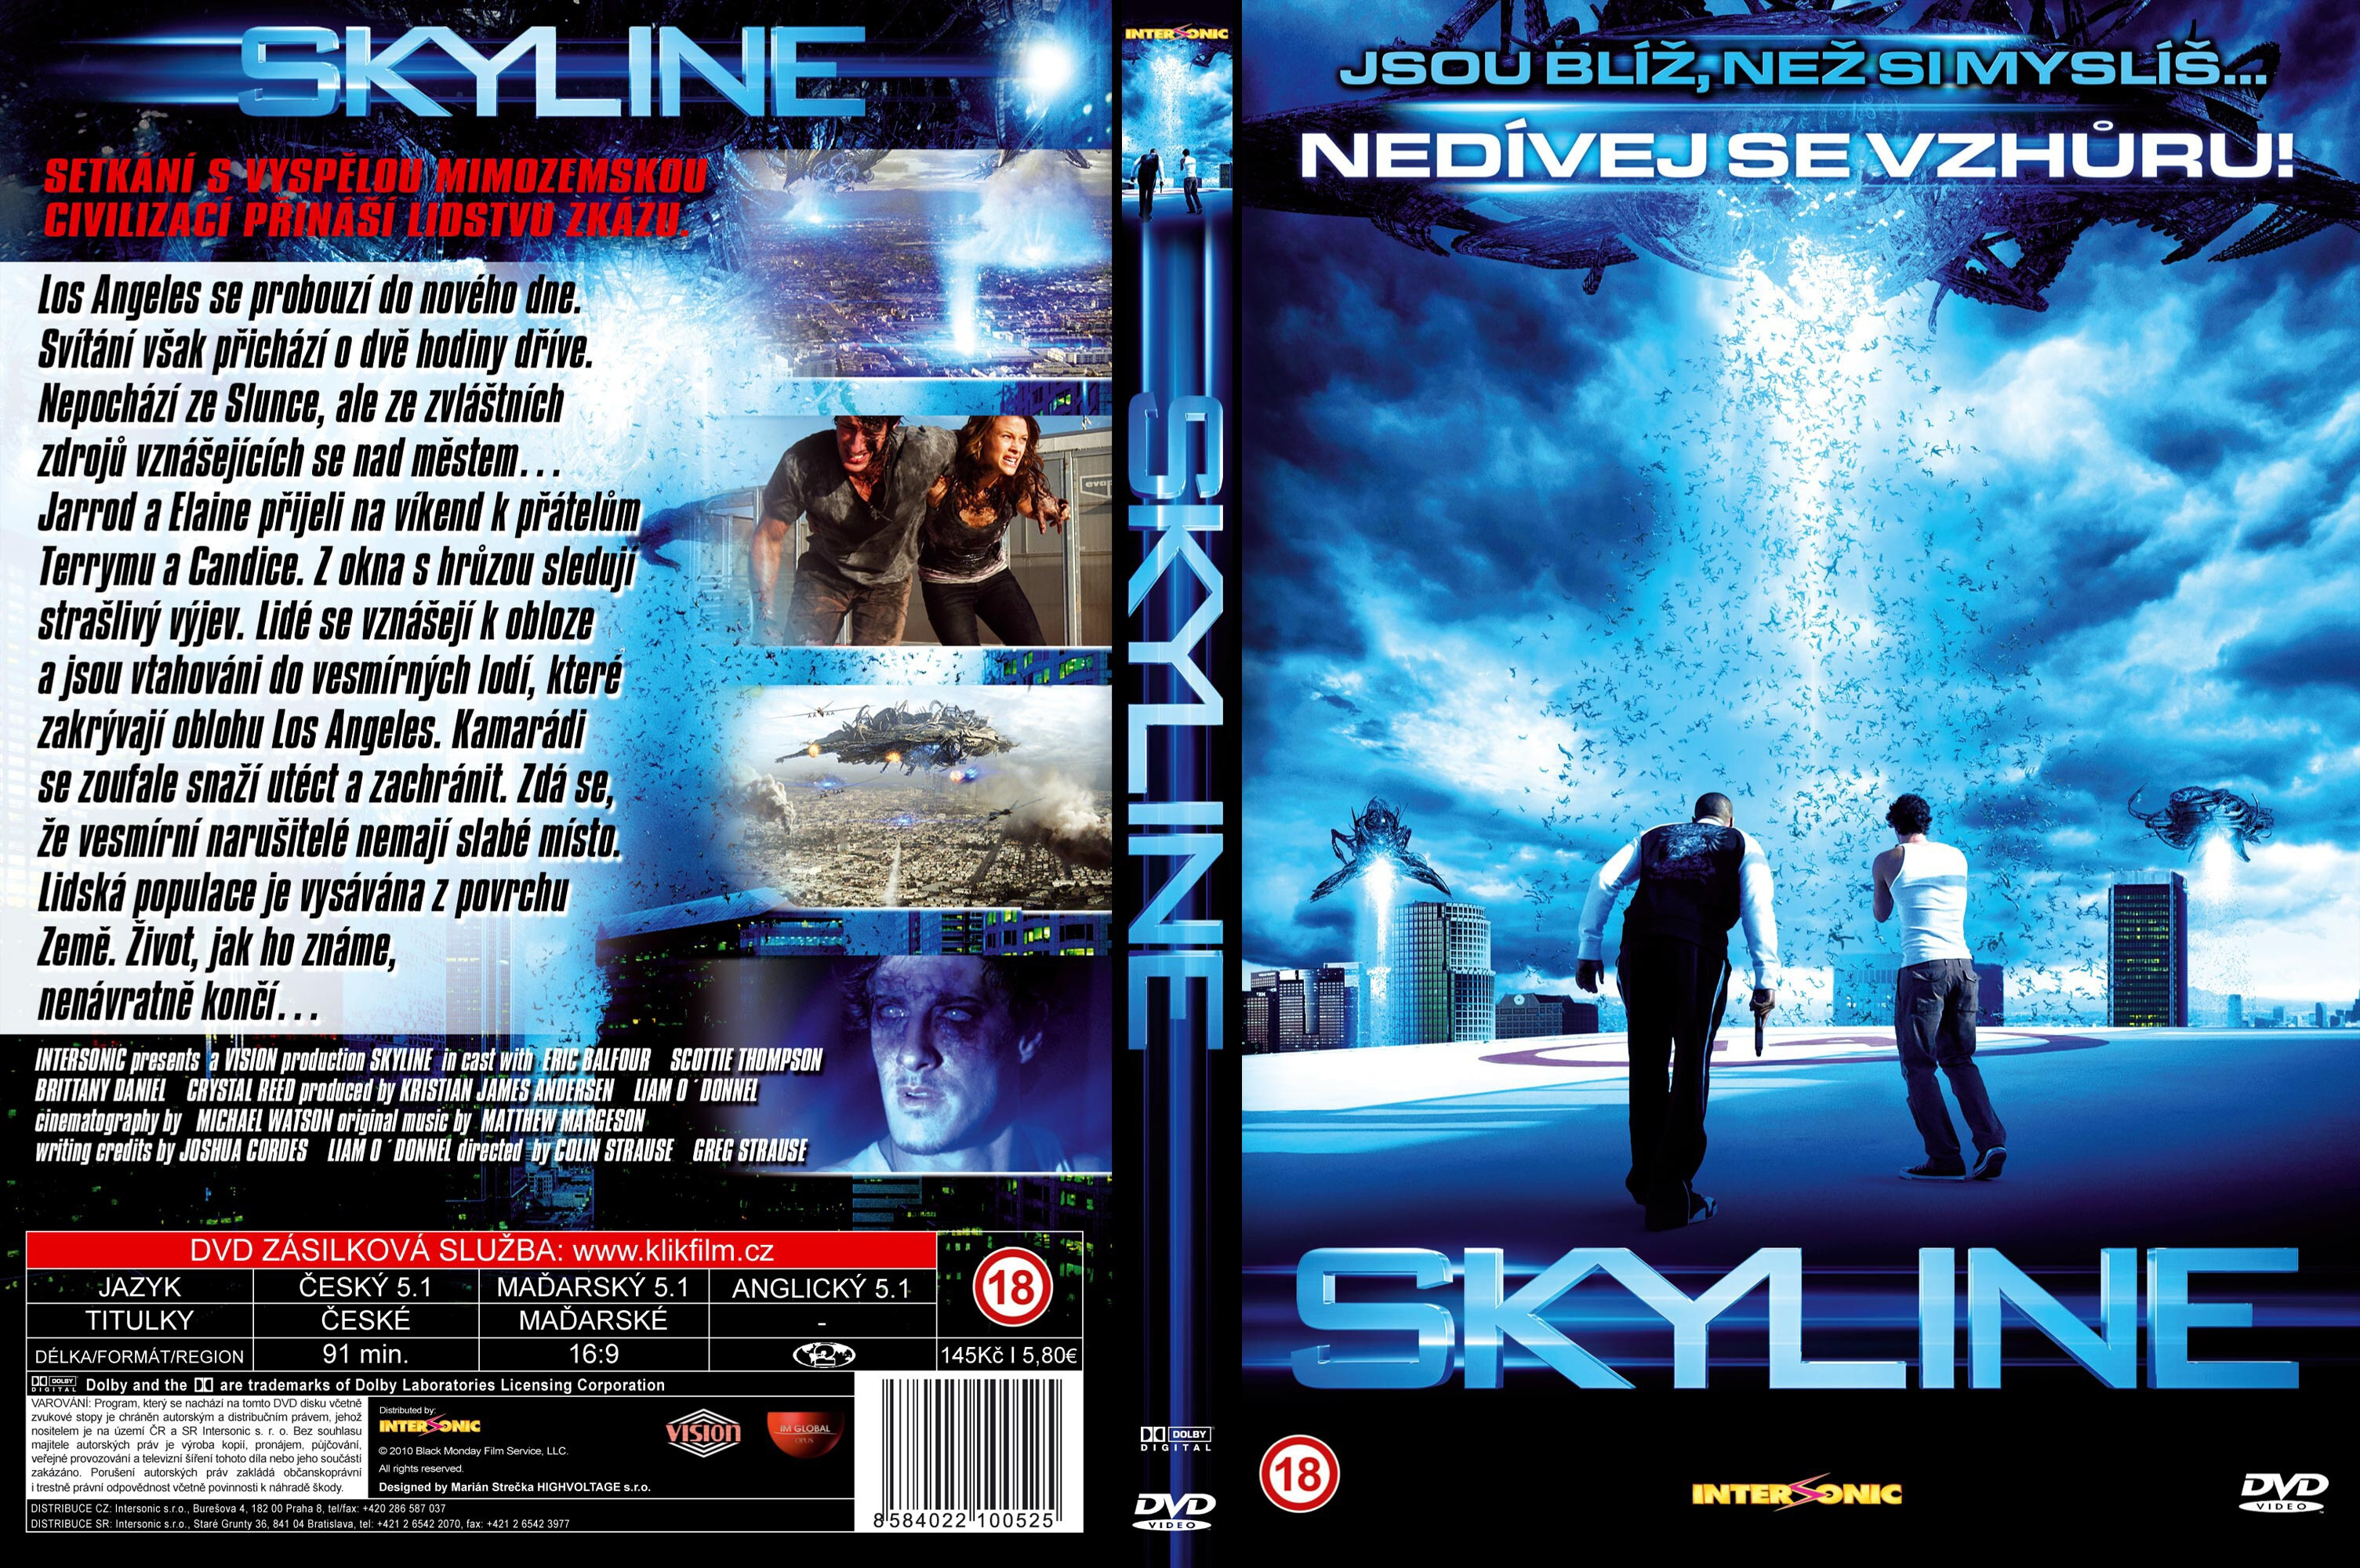 skyline movie download